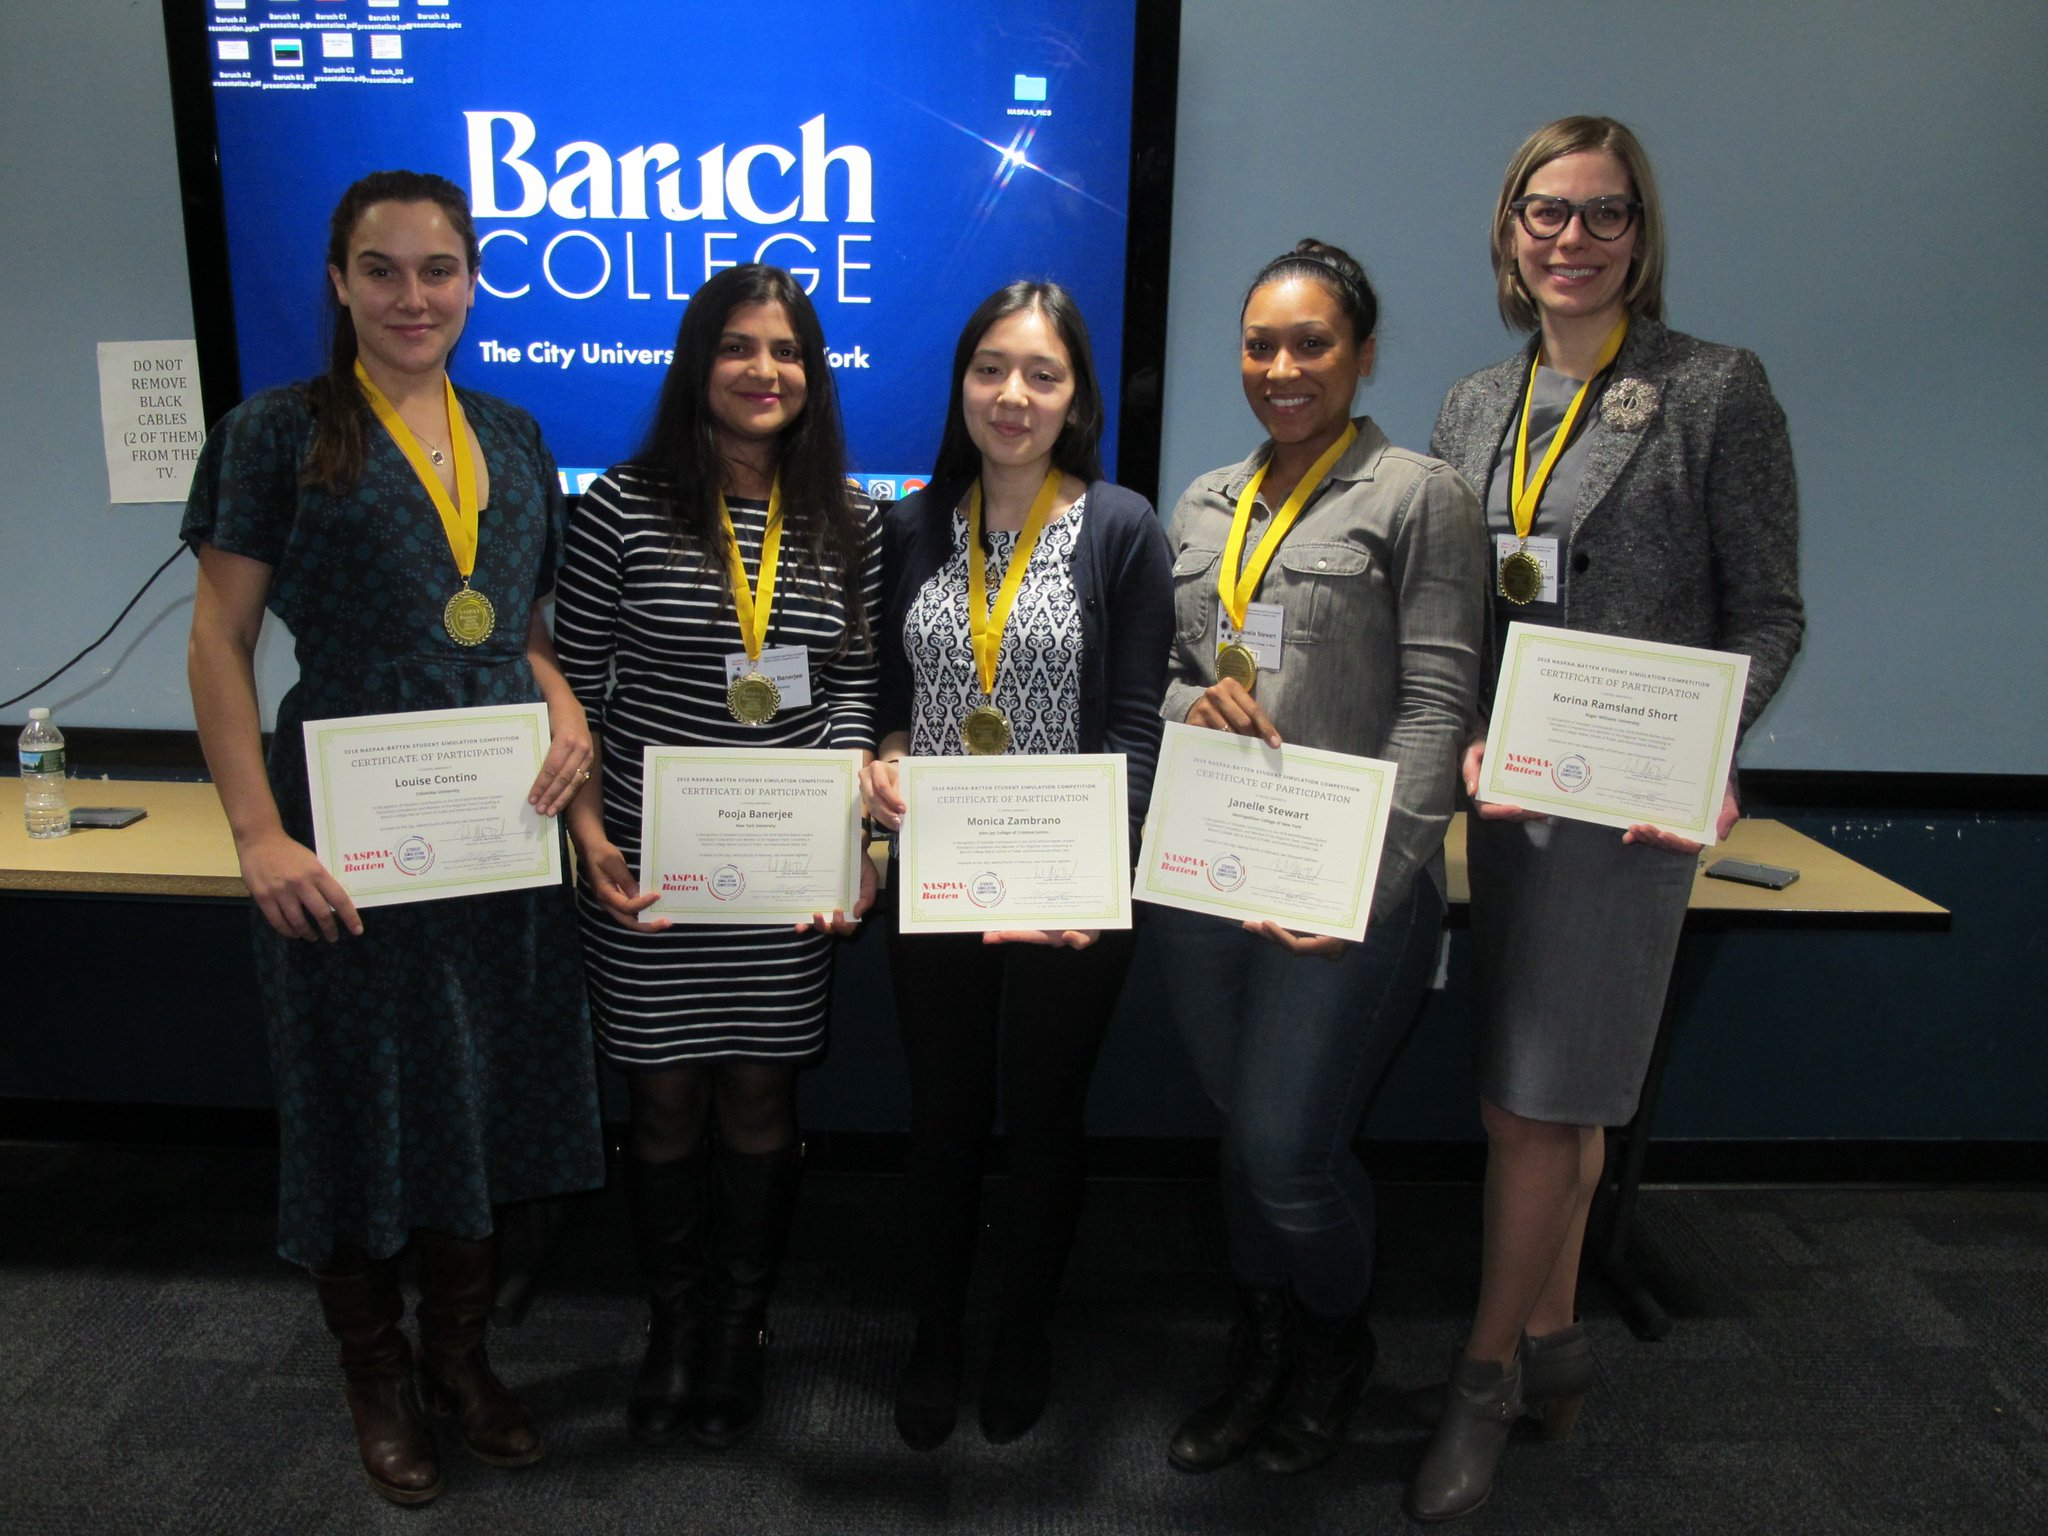 Baruch College On Twitter Meet The Winning Teams That Averted A